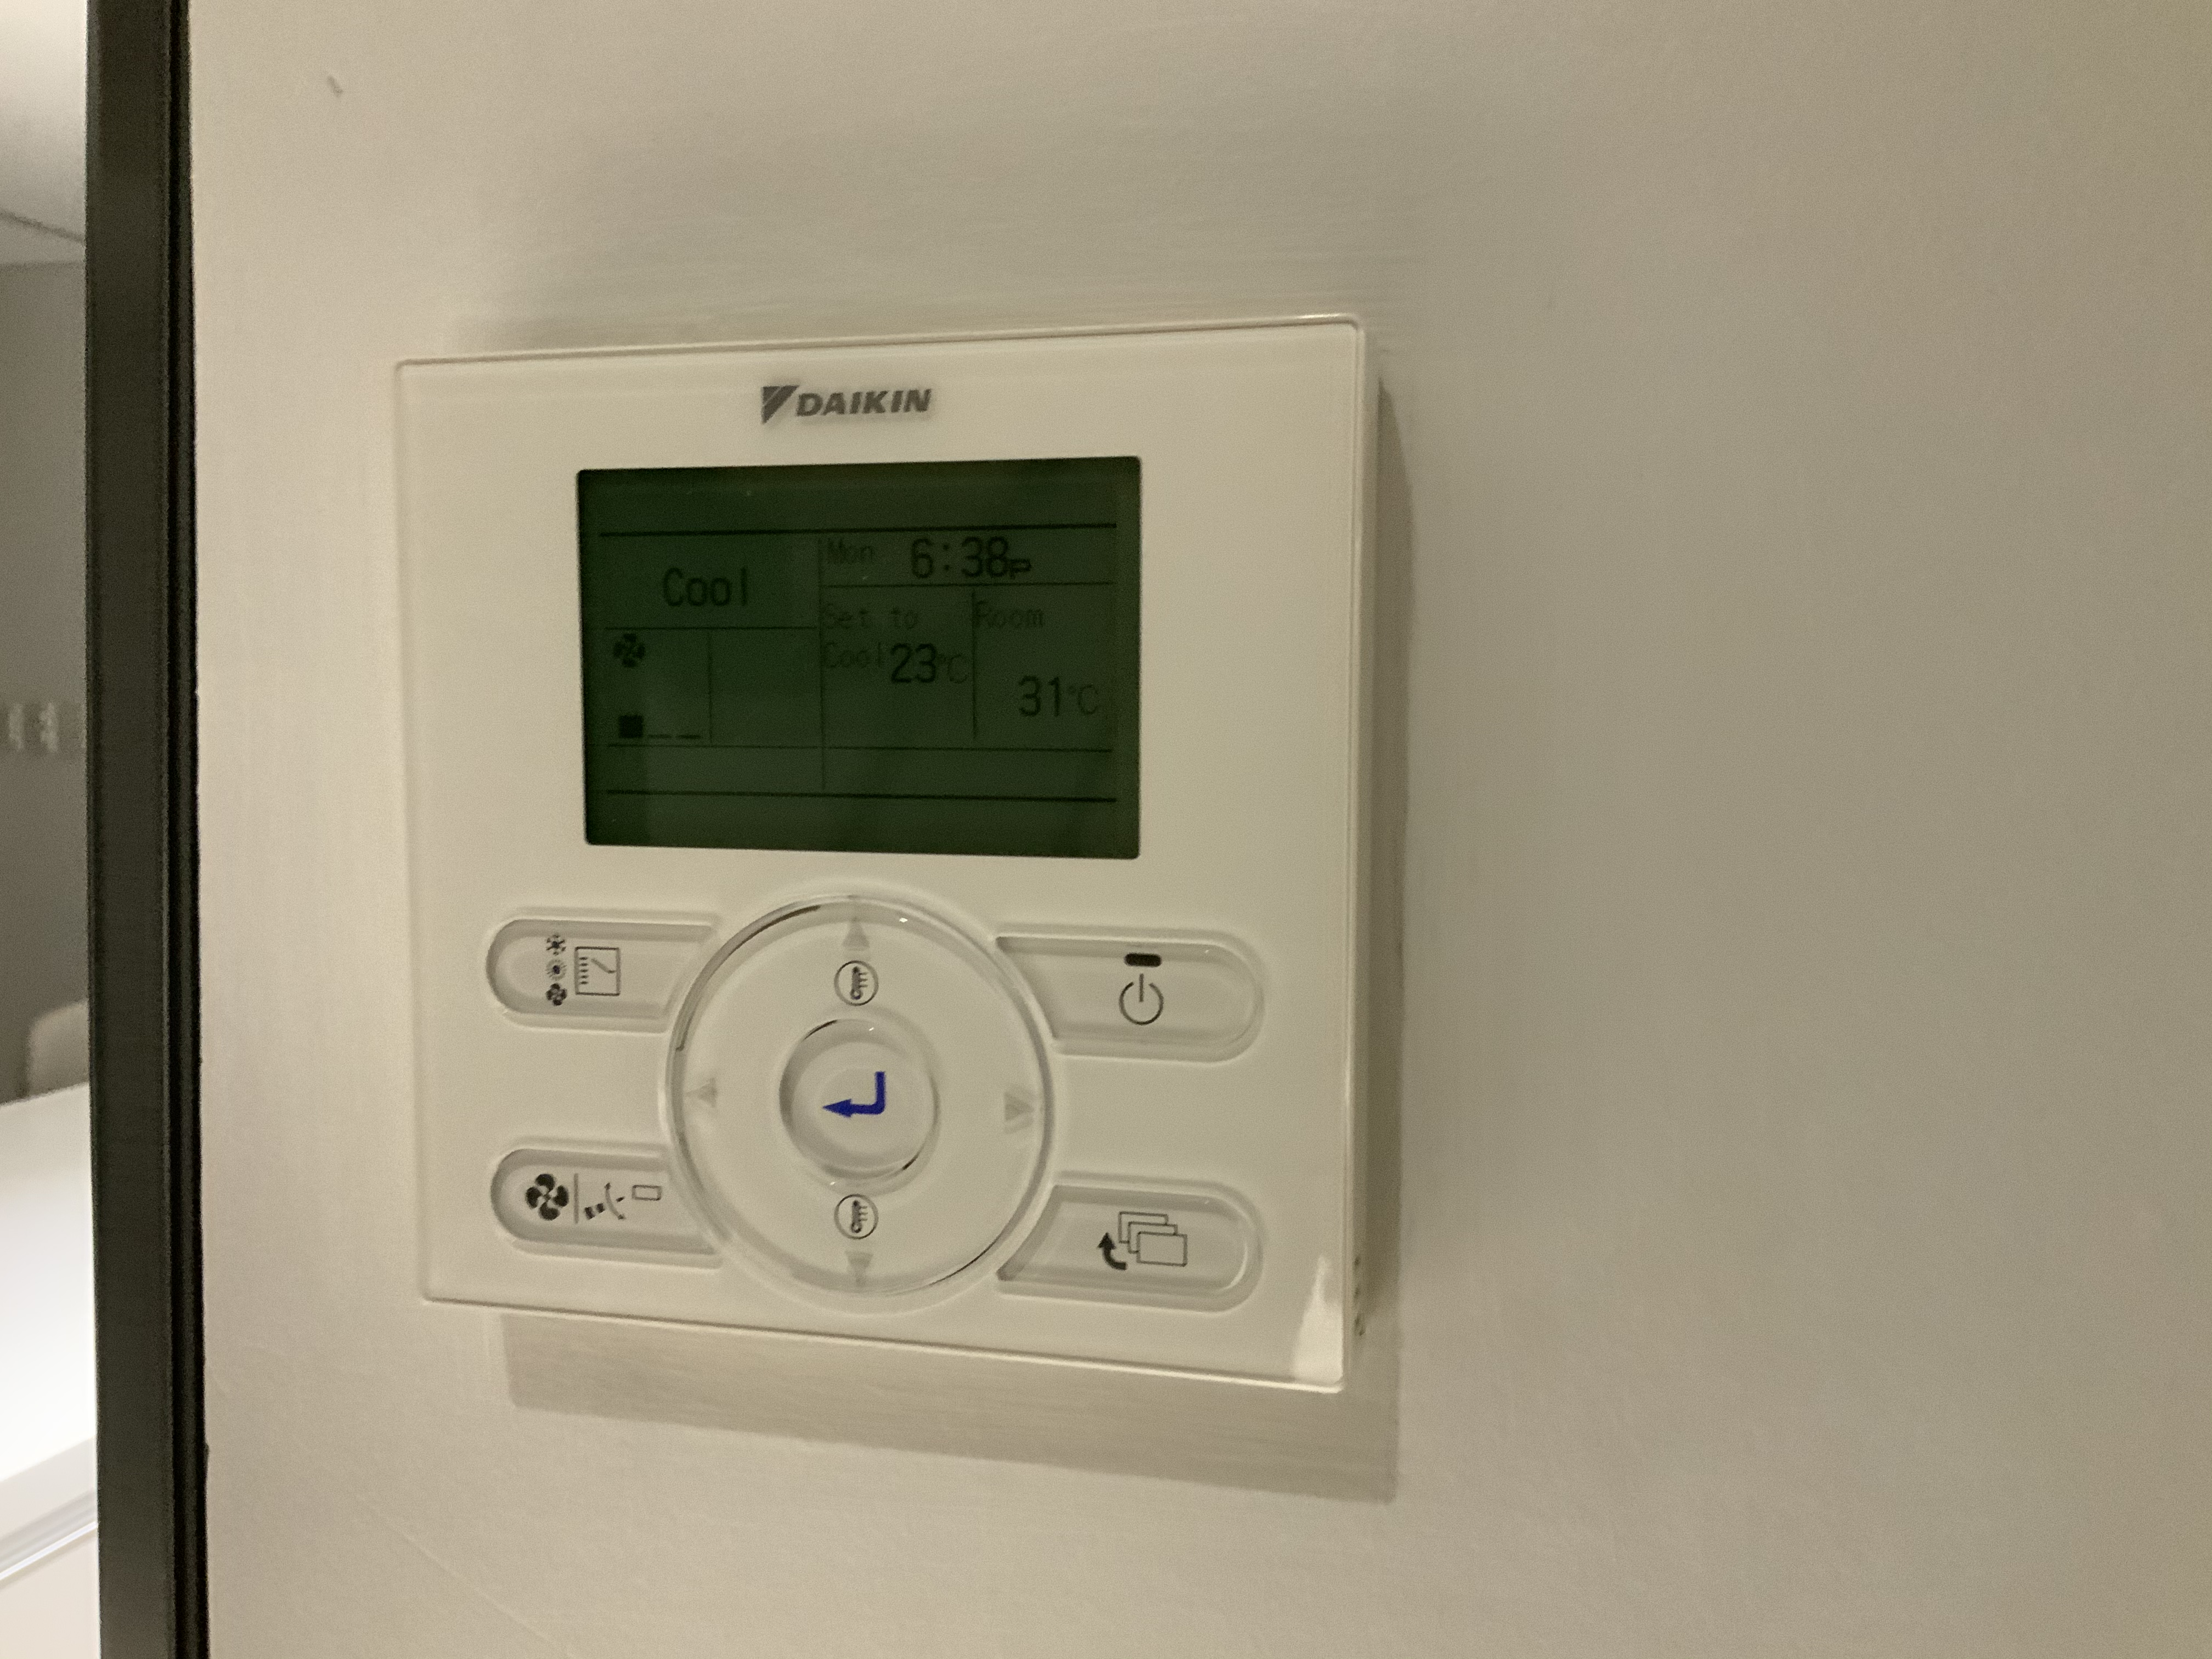 Replacing Daikin Wired Remote with Nest Learning Thermostat